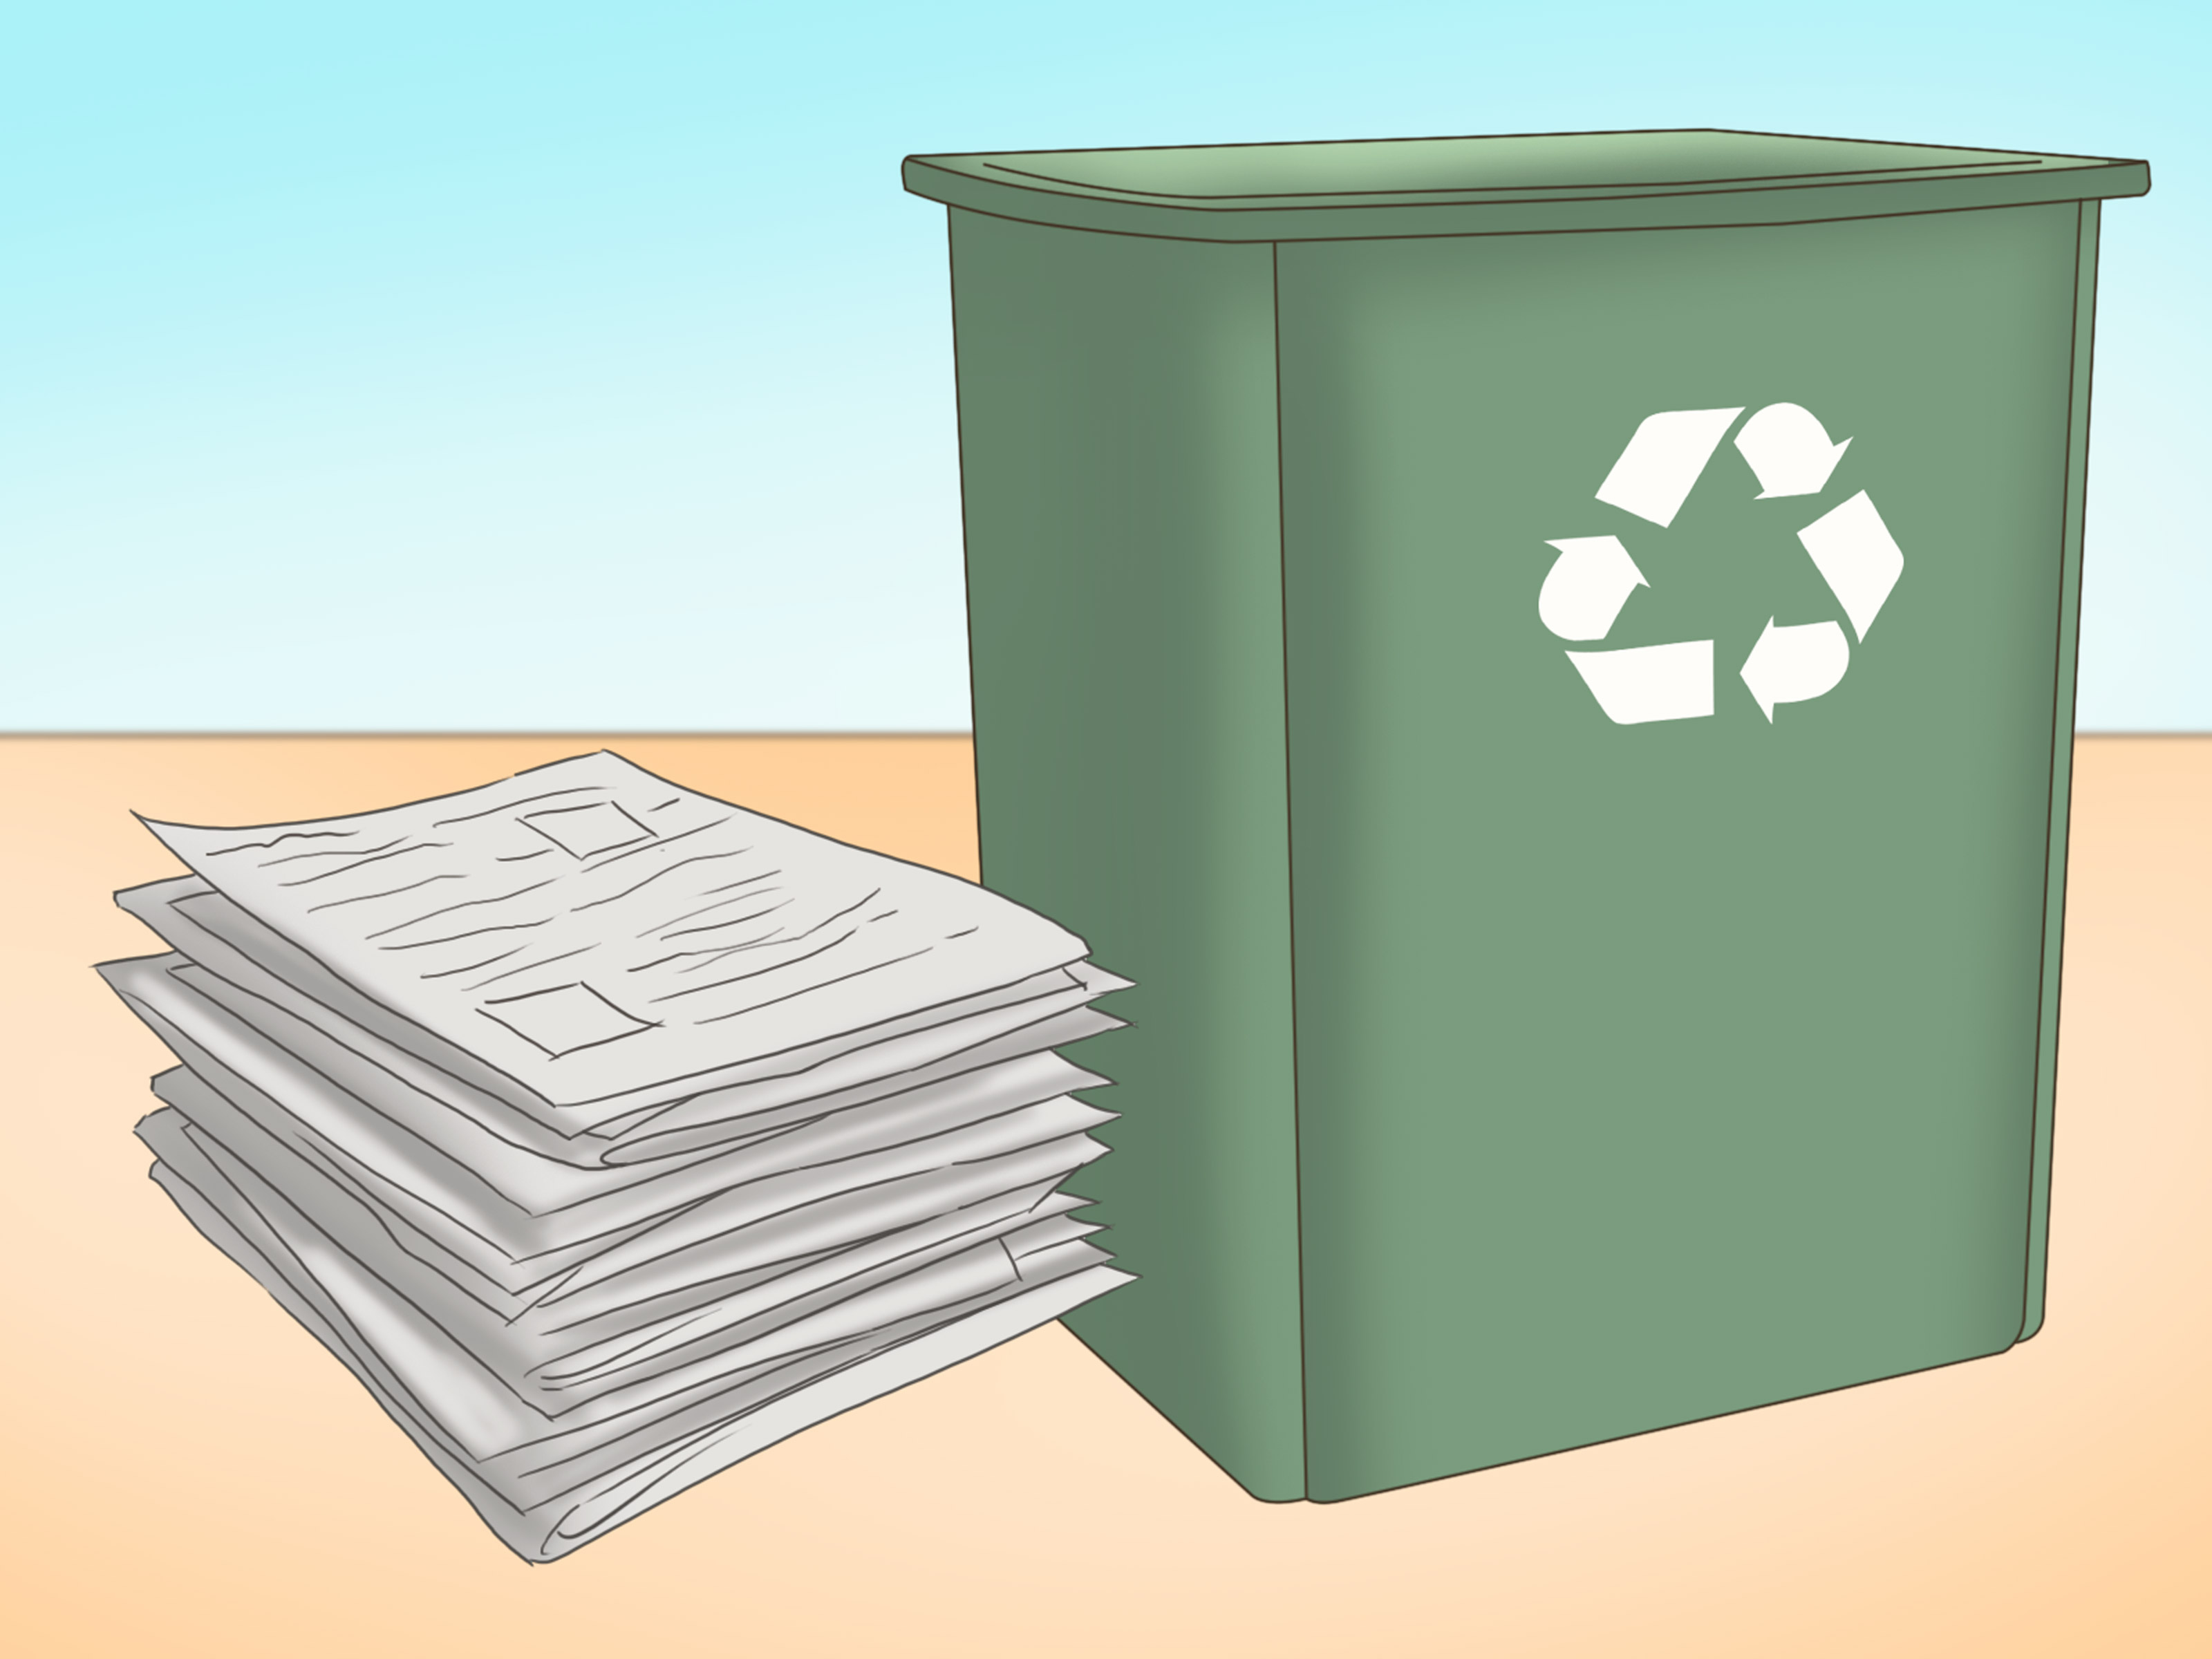 4 Ways to Reuse Old Newspapers - wikiHow